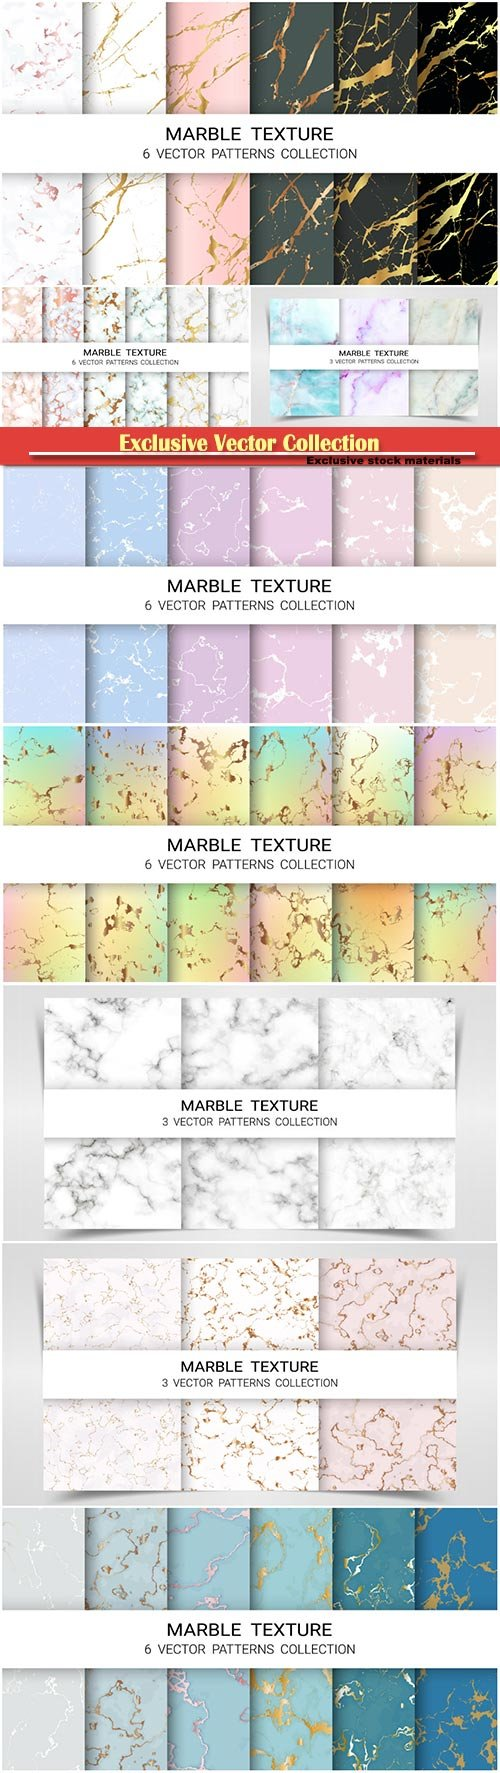 Marbles pattern vector illustration template